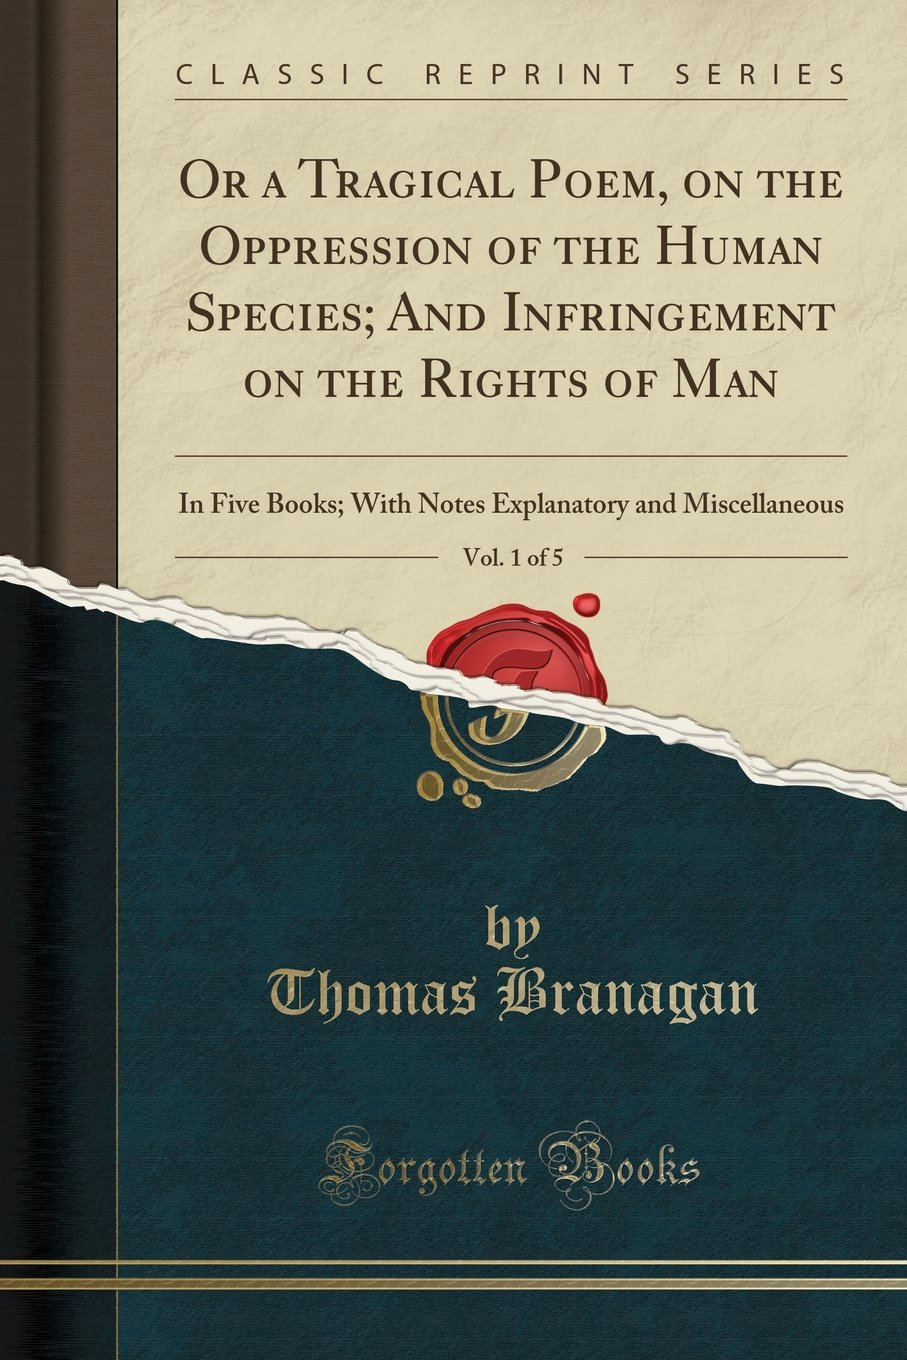 Download Or a Tragical Poem, on the Oppression of the Human Species; And Infringement on the Rights of Man, Vol. 1 of 5: In Five Books; With Notes Explanatory and Miscellaneous (Classic Reprint) ebook